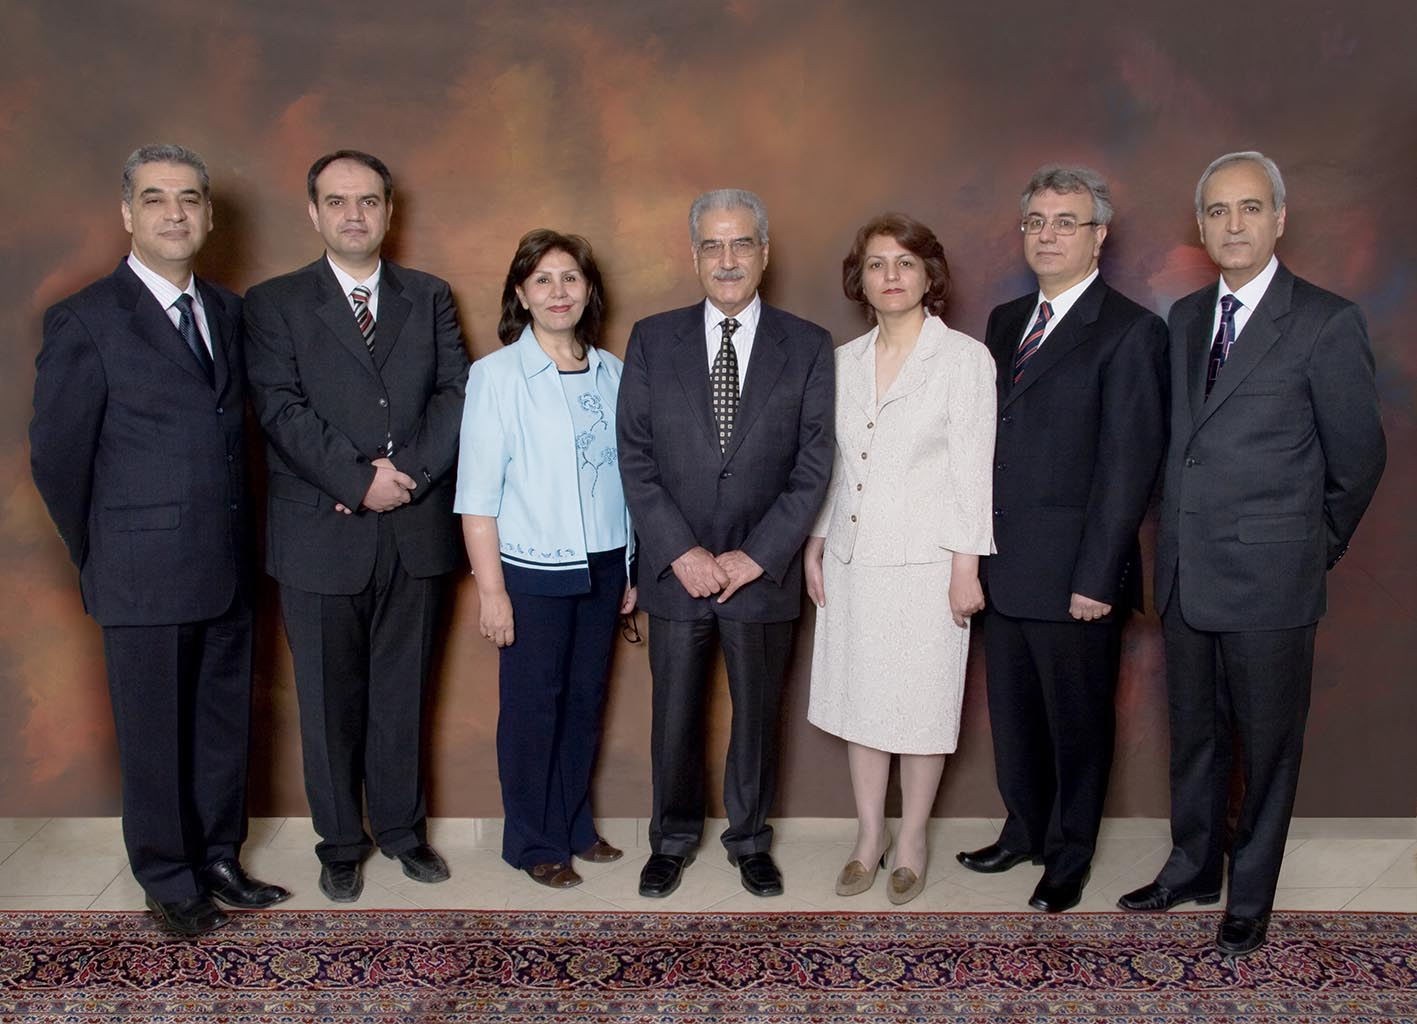 Call for immediate release of Bahai leaders in Iran